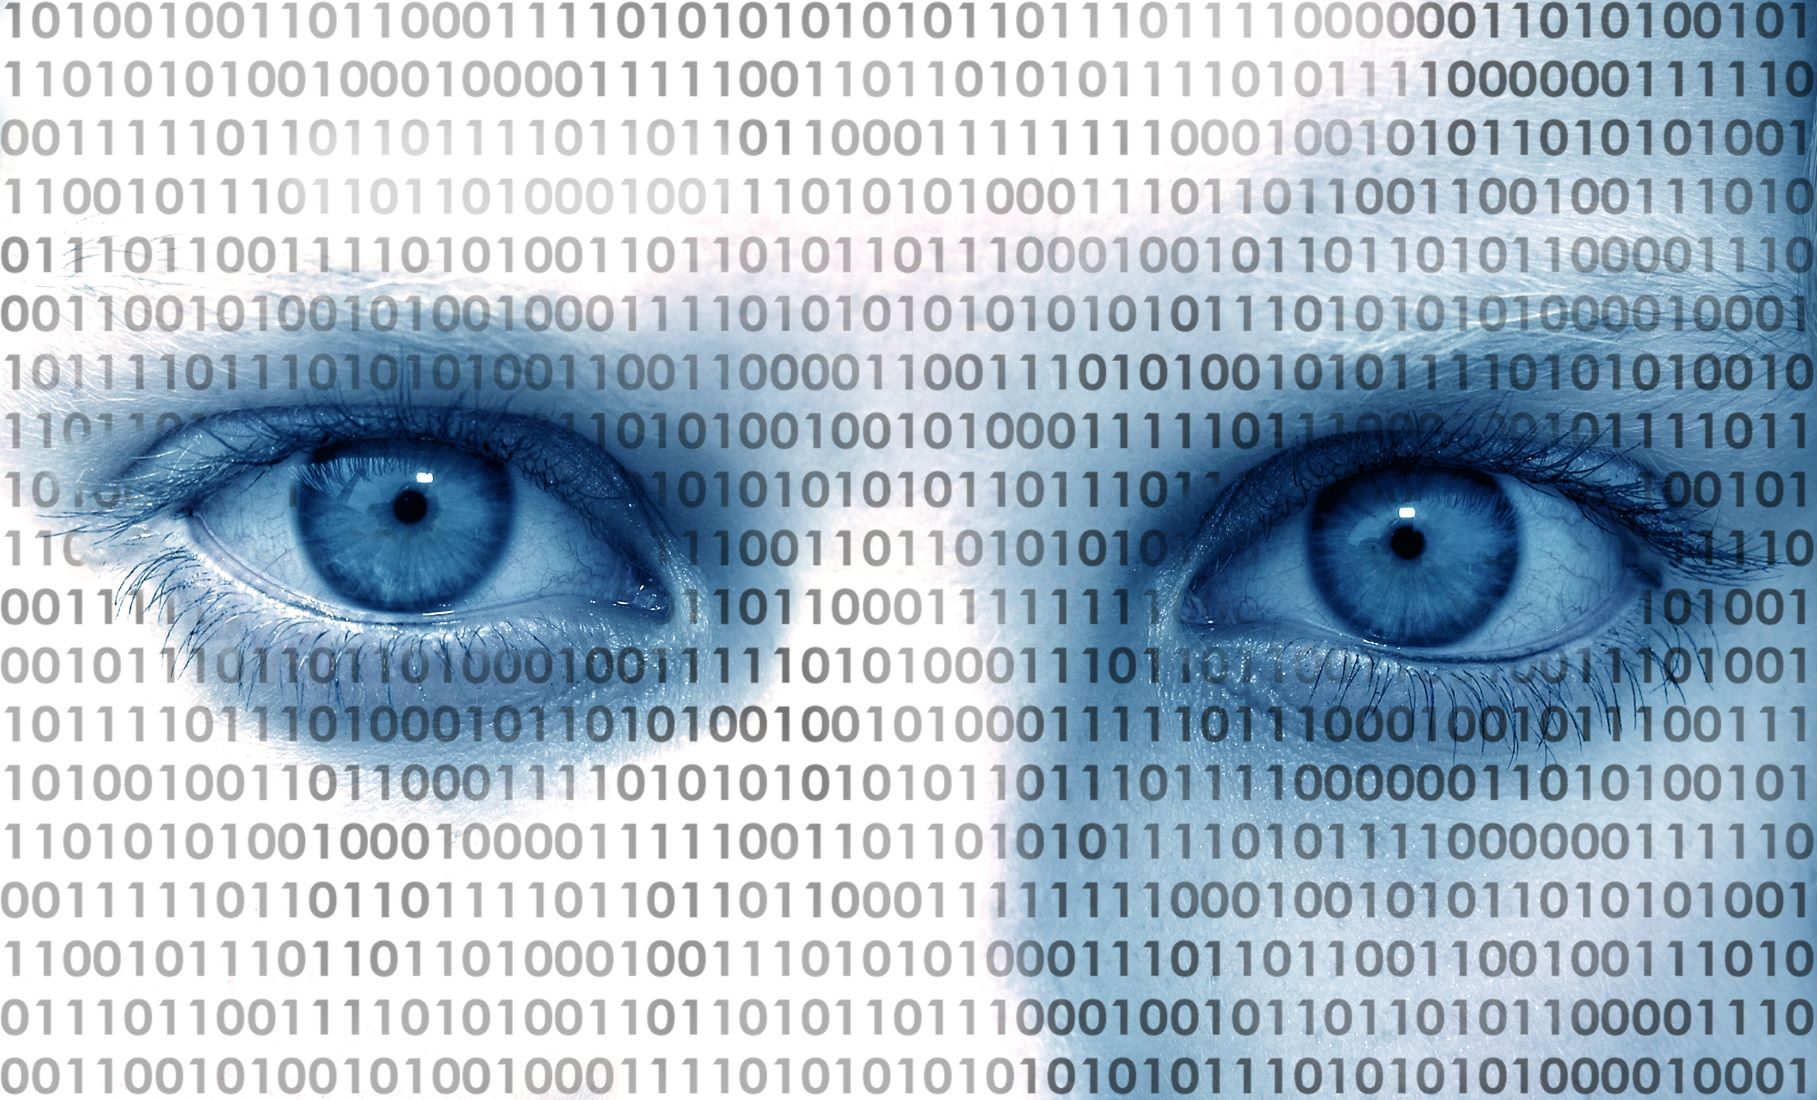 About the Investigatory powers act and how it will affect business